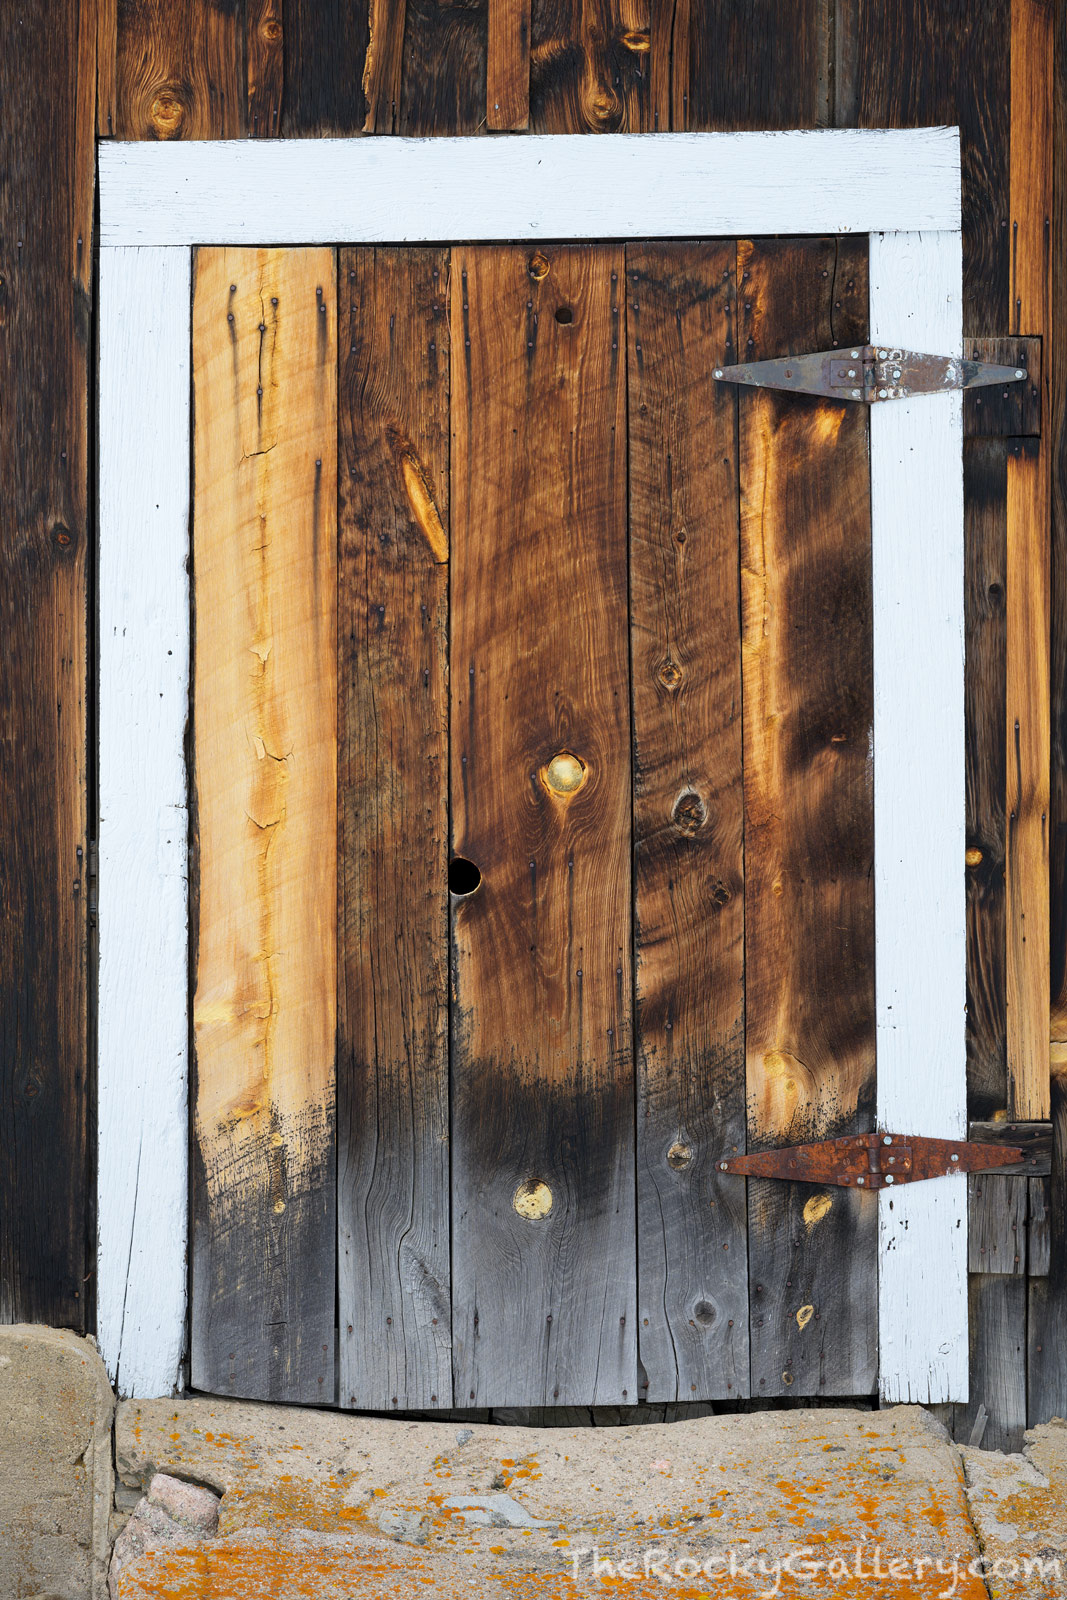 The west barn door at McGraw Ranch is a study in weathered wood and craftsmanship. This small barn door while crude also shows...